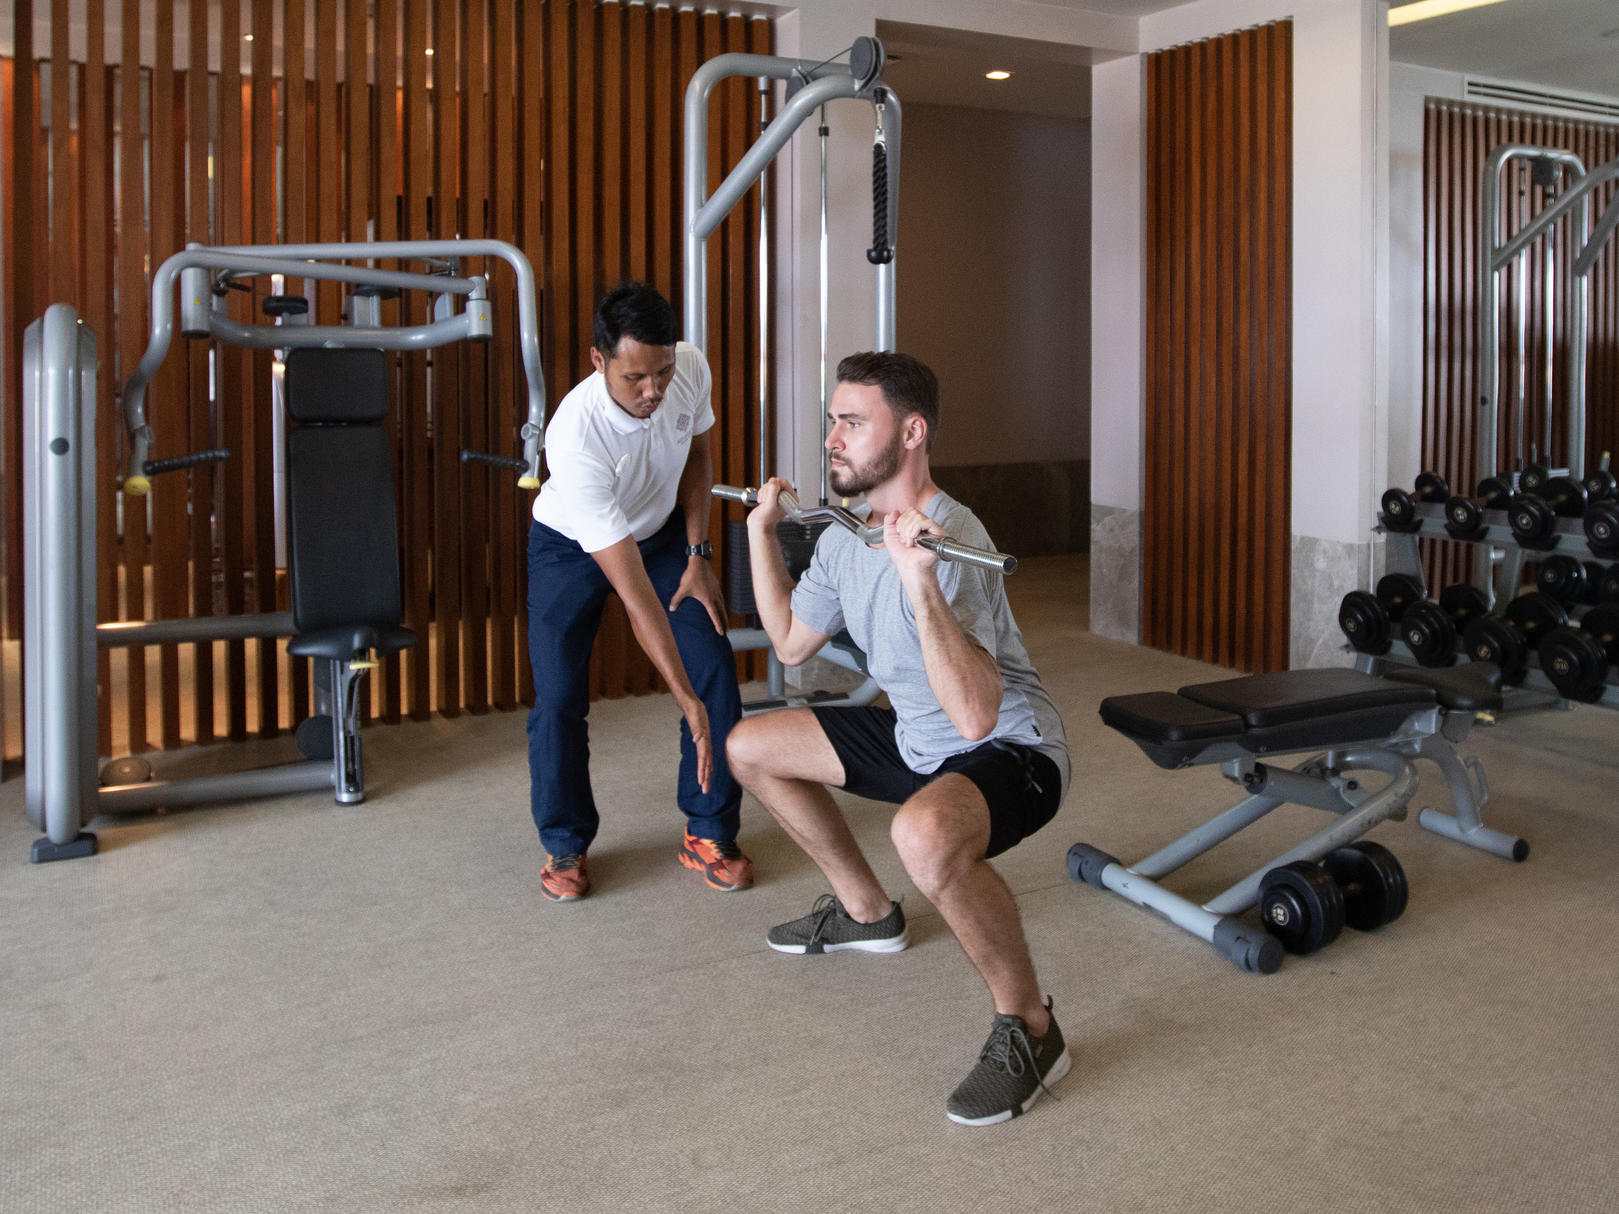 a male guest working out in the gym with a fitness instructor